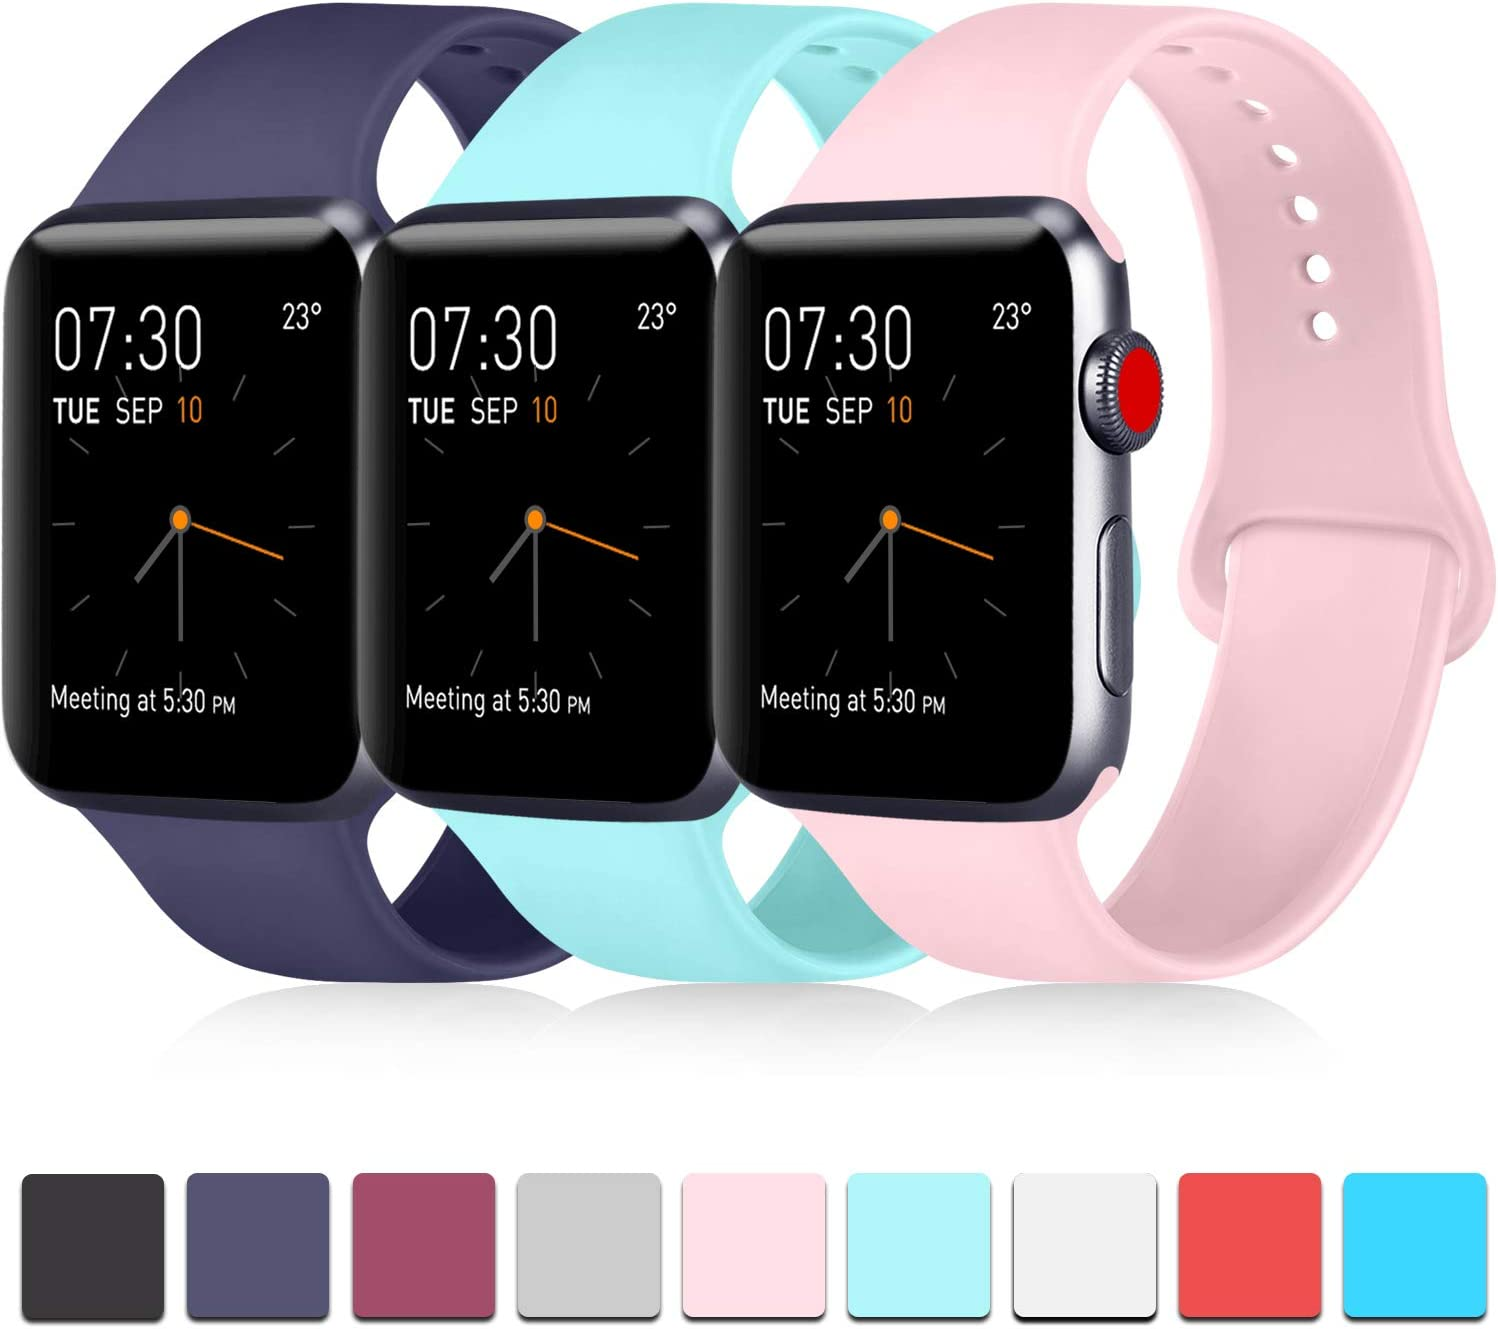 Pack 3 Compatible with Apple Watch Band 38mm 40mm 42mm 44mm, Soft Silicone Band Replacement for Apple iWatch Series 4, Series 3, Series 2, Series 1